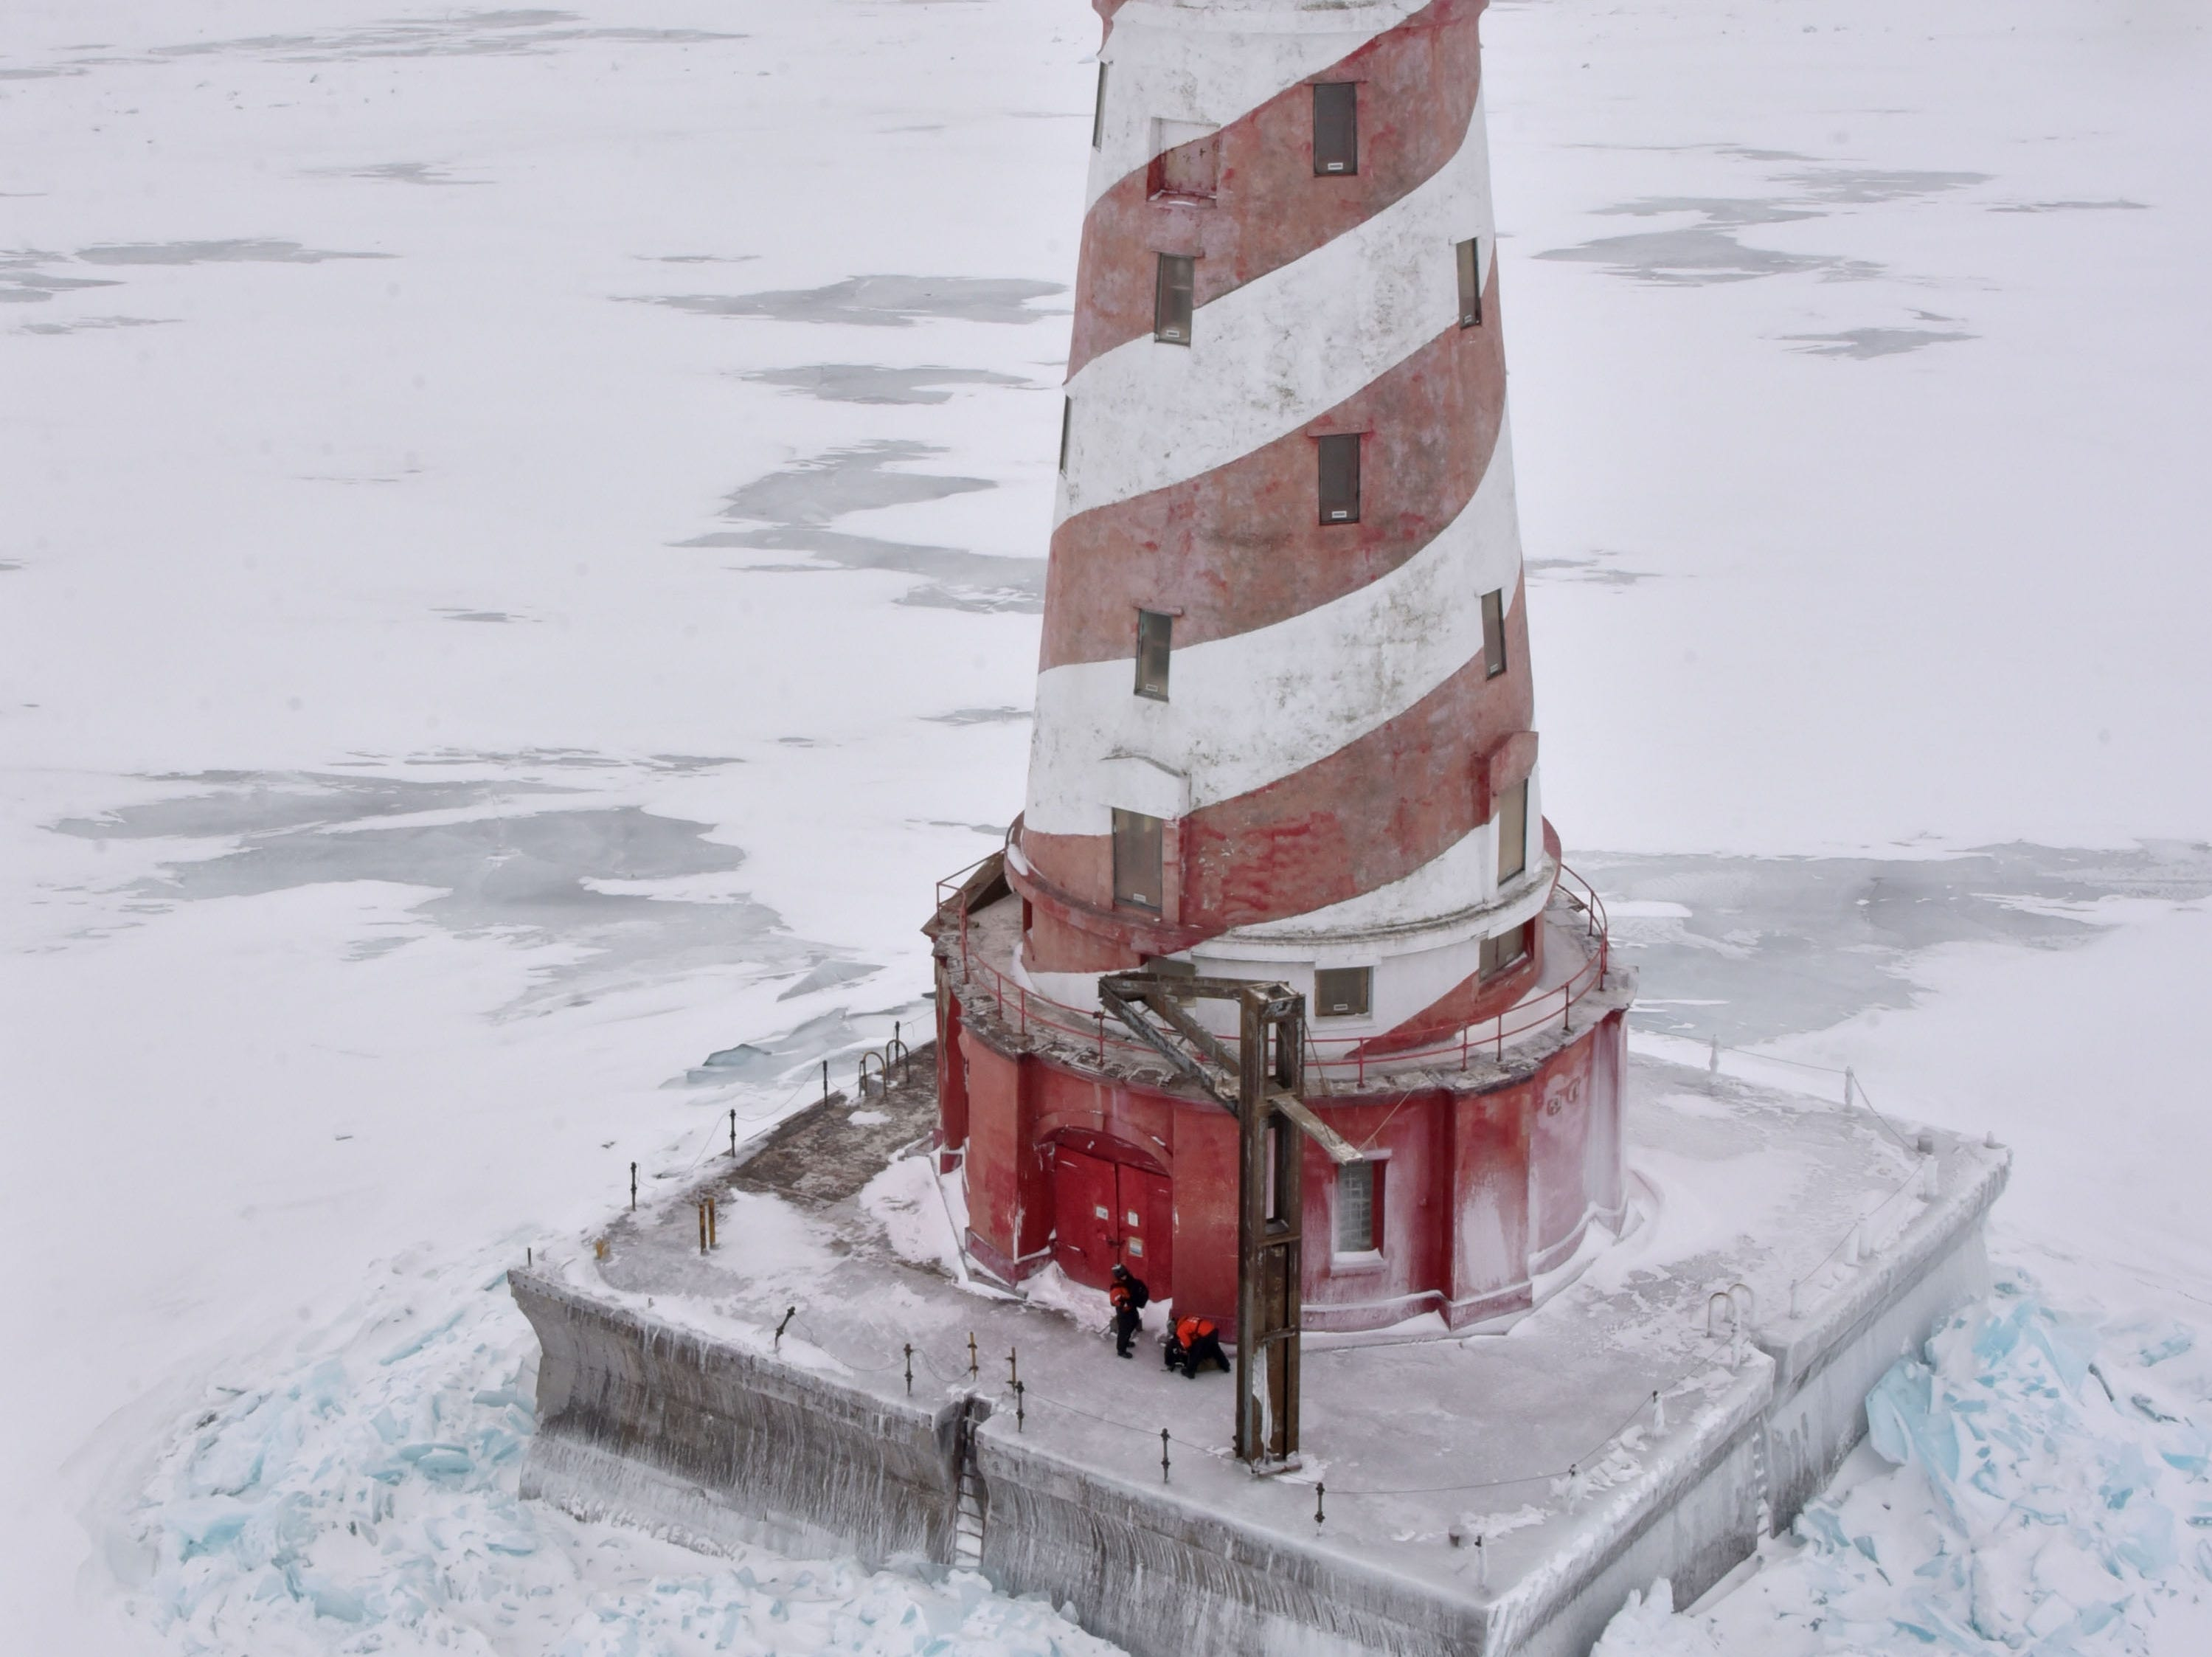 Two U.S. Coast Guard maintenance specialists wait on the deck of the White Shoal Lighthouse in upper Lake Michigan Thursday, Feb. 14, 2019 after performing maintenance on the high-powered light, which is 125-feet high. Several times a month an air crew from Air Station Traverse City places men on lighthouses as part of the Aids to Navigation project. All lights are automated and need to be kept operating all year.